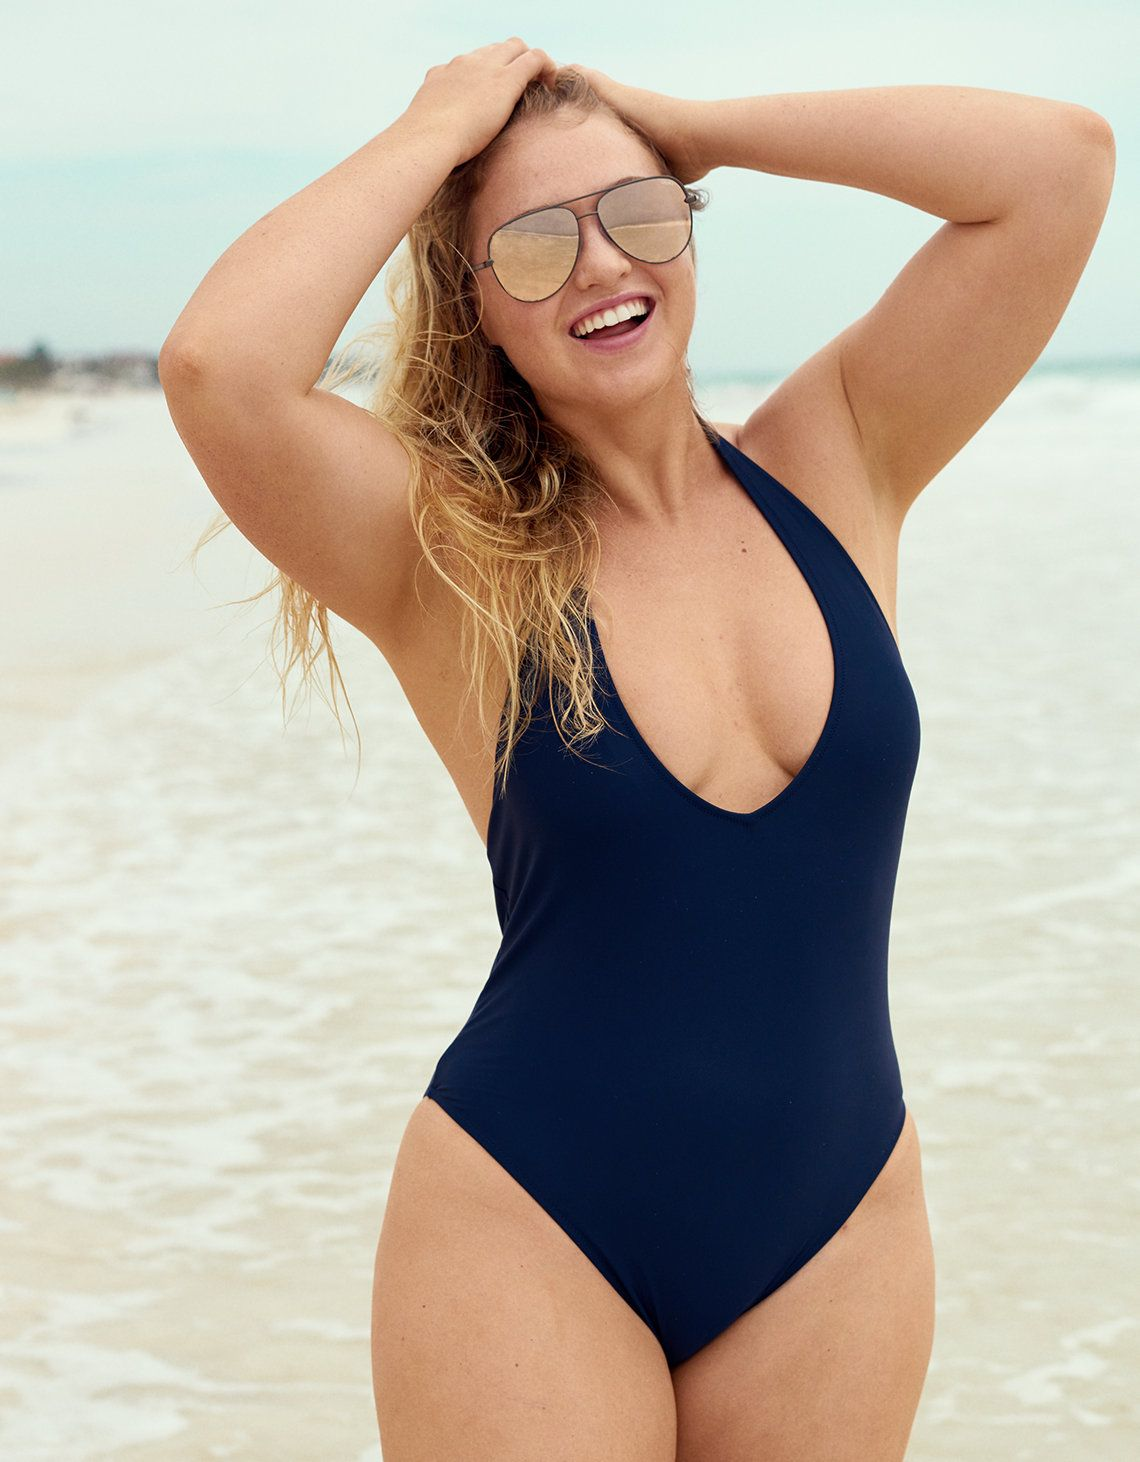 95fc412d08b15 Image for the product Plunging One Piece Swimsuit, Iskra Lawrence, Mens  Outfitters, Plus